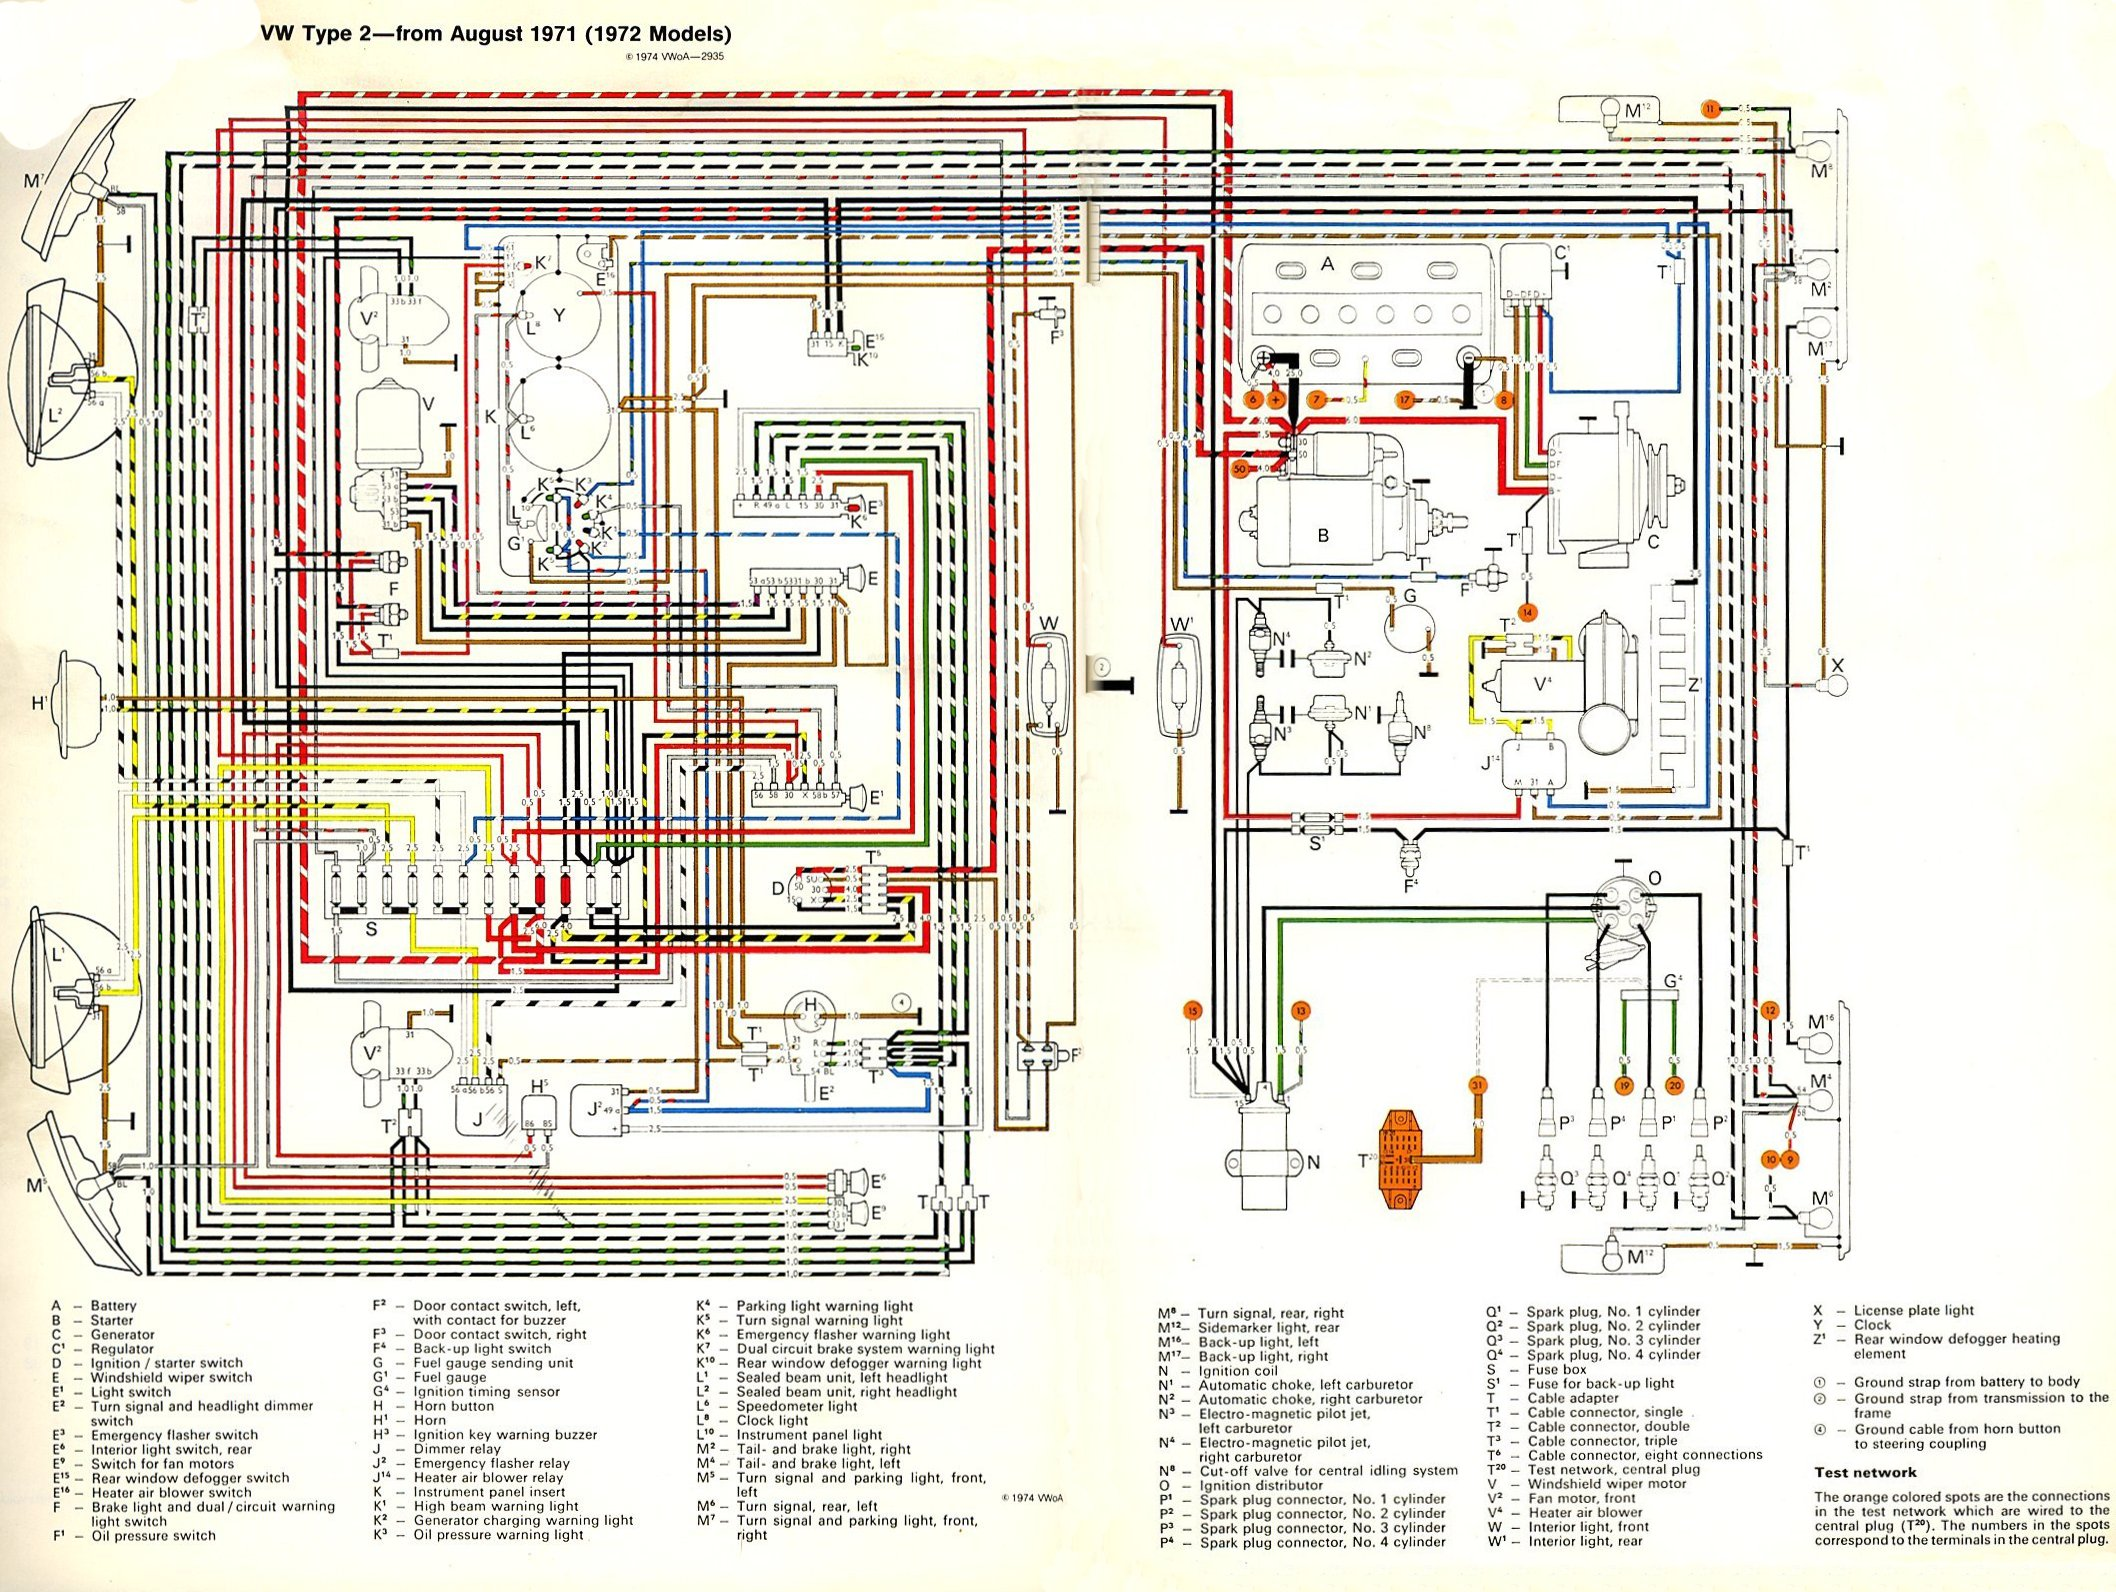 camper wiring harness diagram wiring diagram symbols pdf wiring wiring diagrams bus 1972 wiring wiring diagram